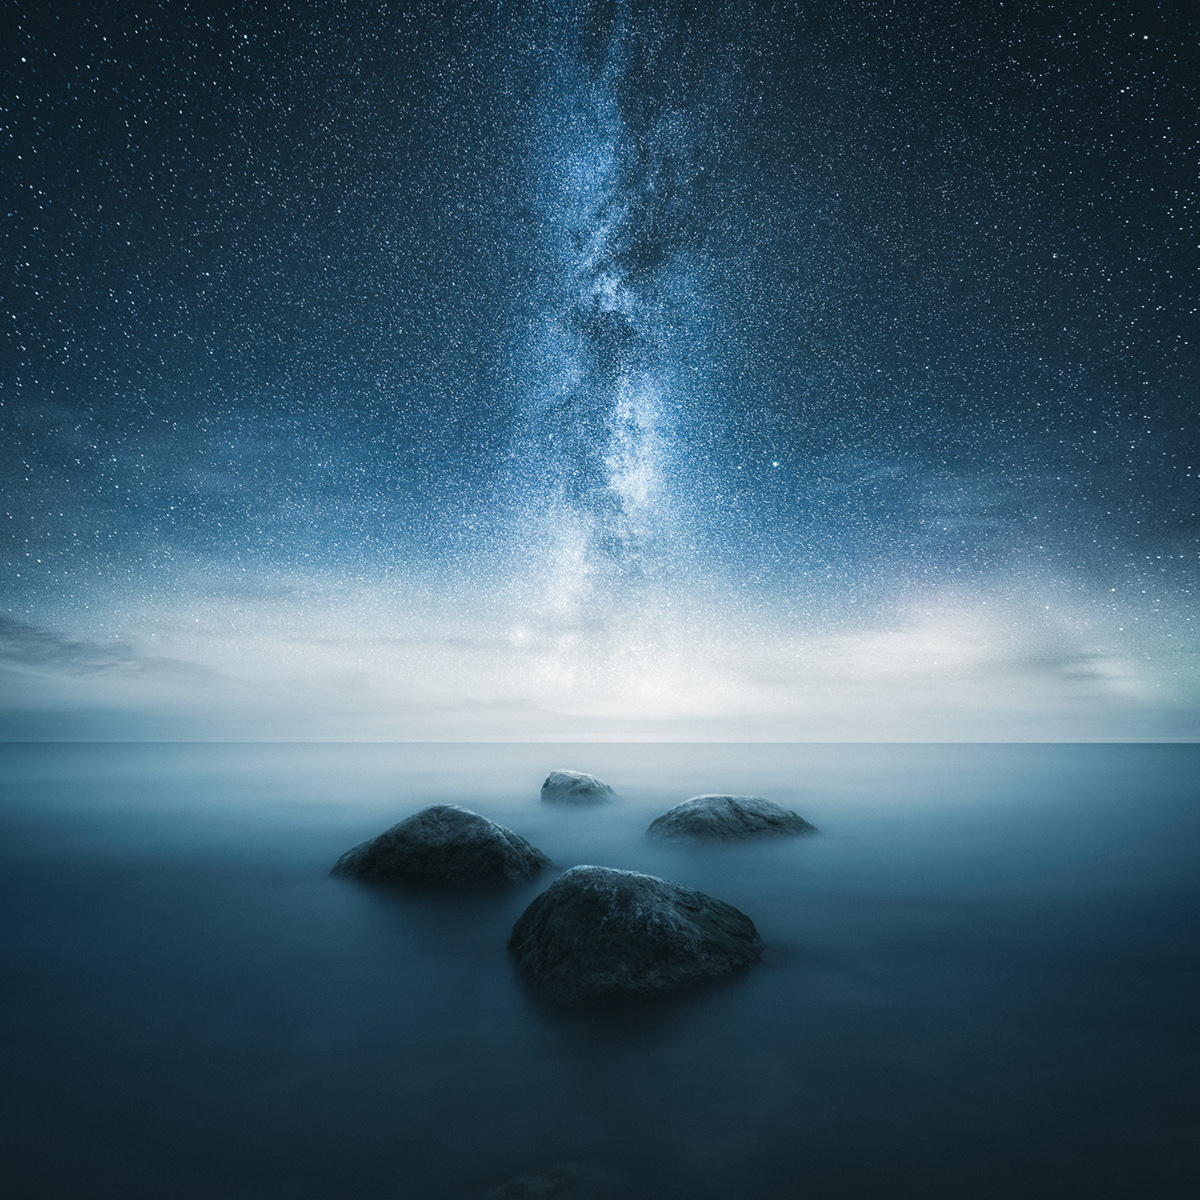 Mikko Lagerstedt - Invisible by day - 5